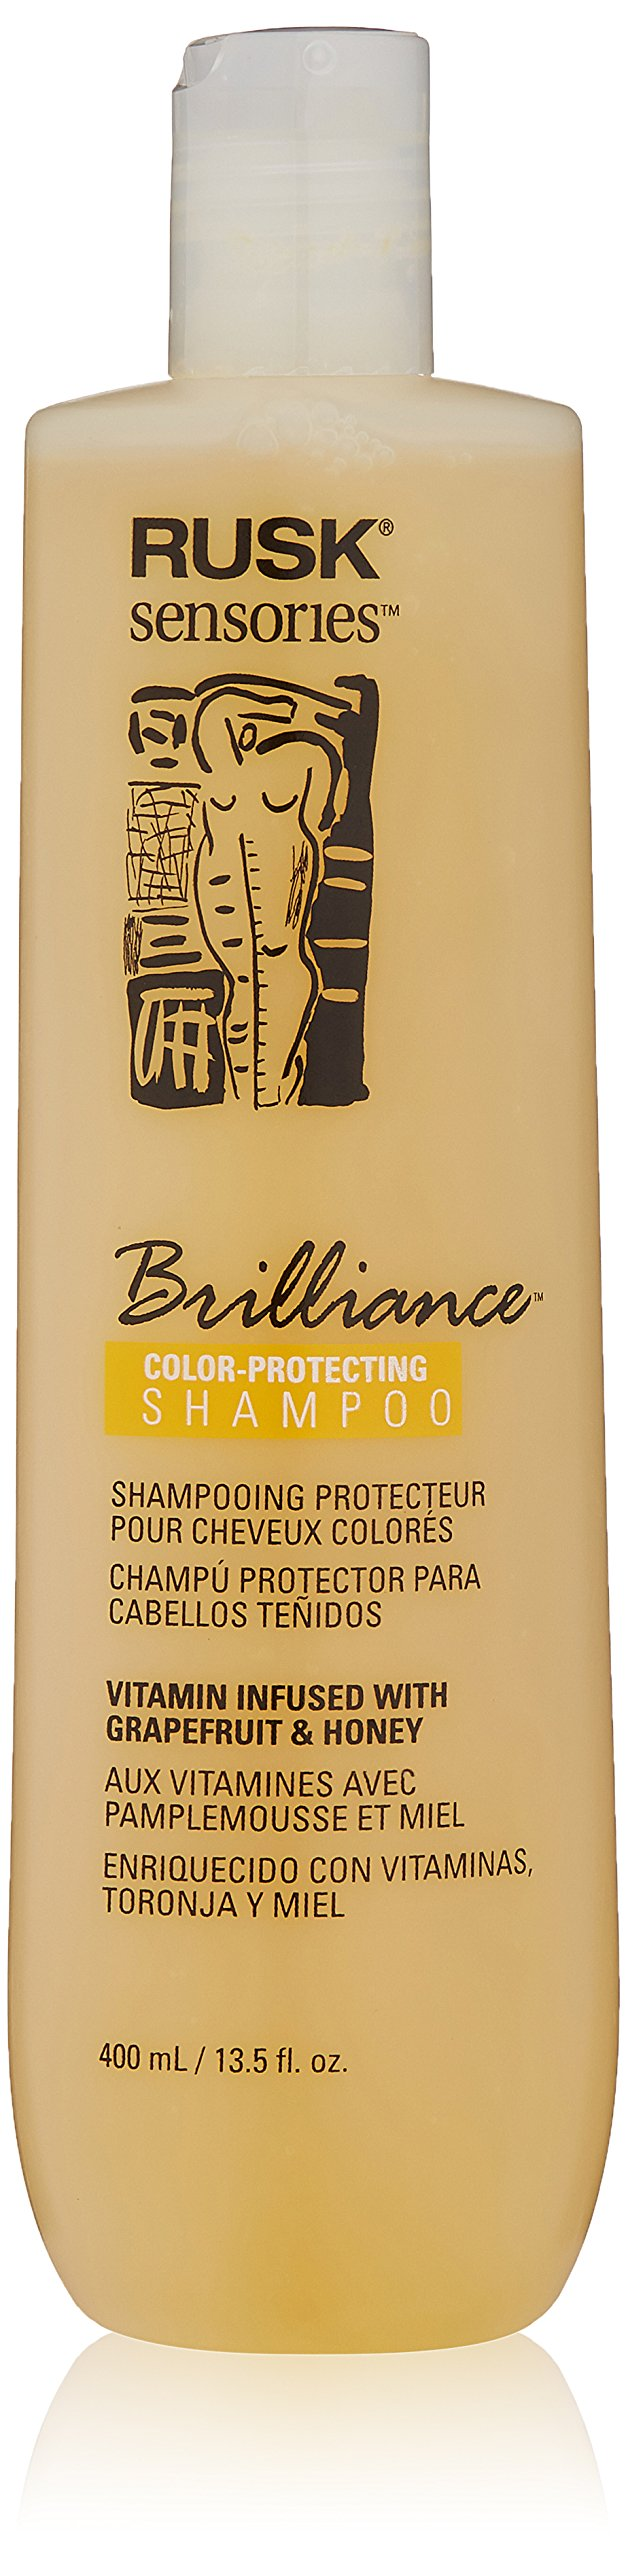 RUSK Sensories Brilliance Grapefruit and Honey Color Protecting Shampoo, 13.5 Fl. oz.